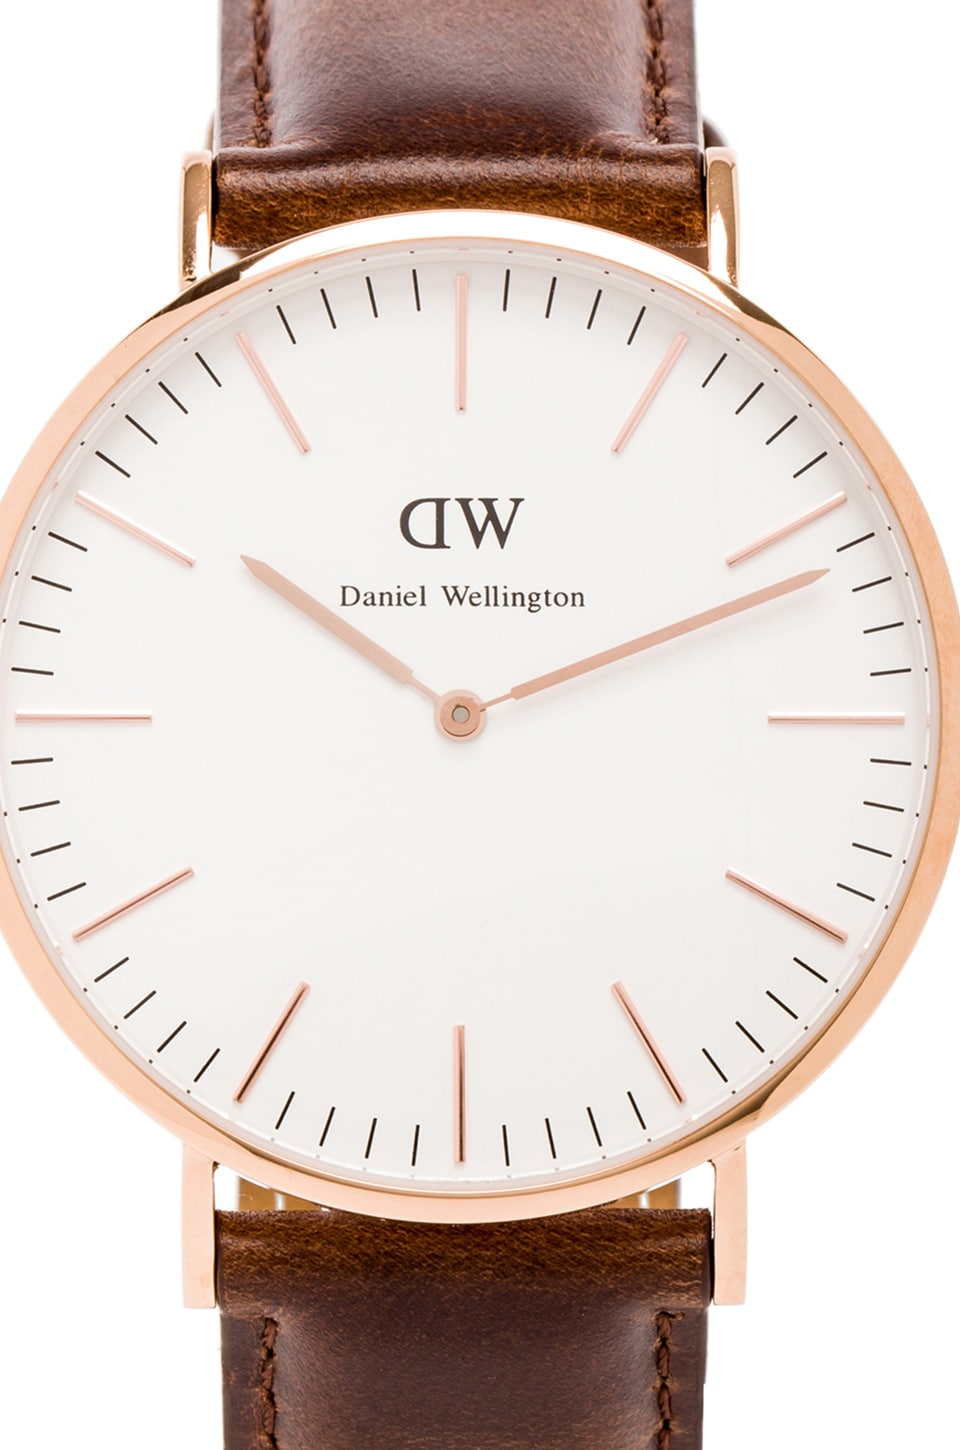 Daniel Wellington Bristol 40mm in Rose Gold